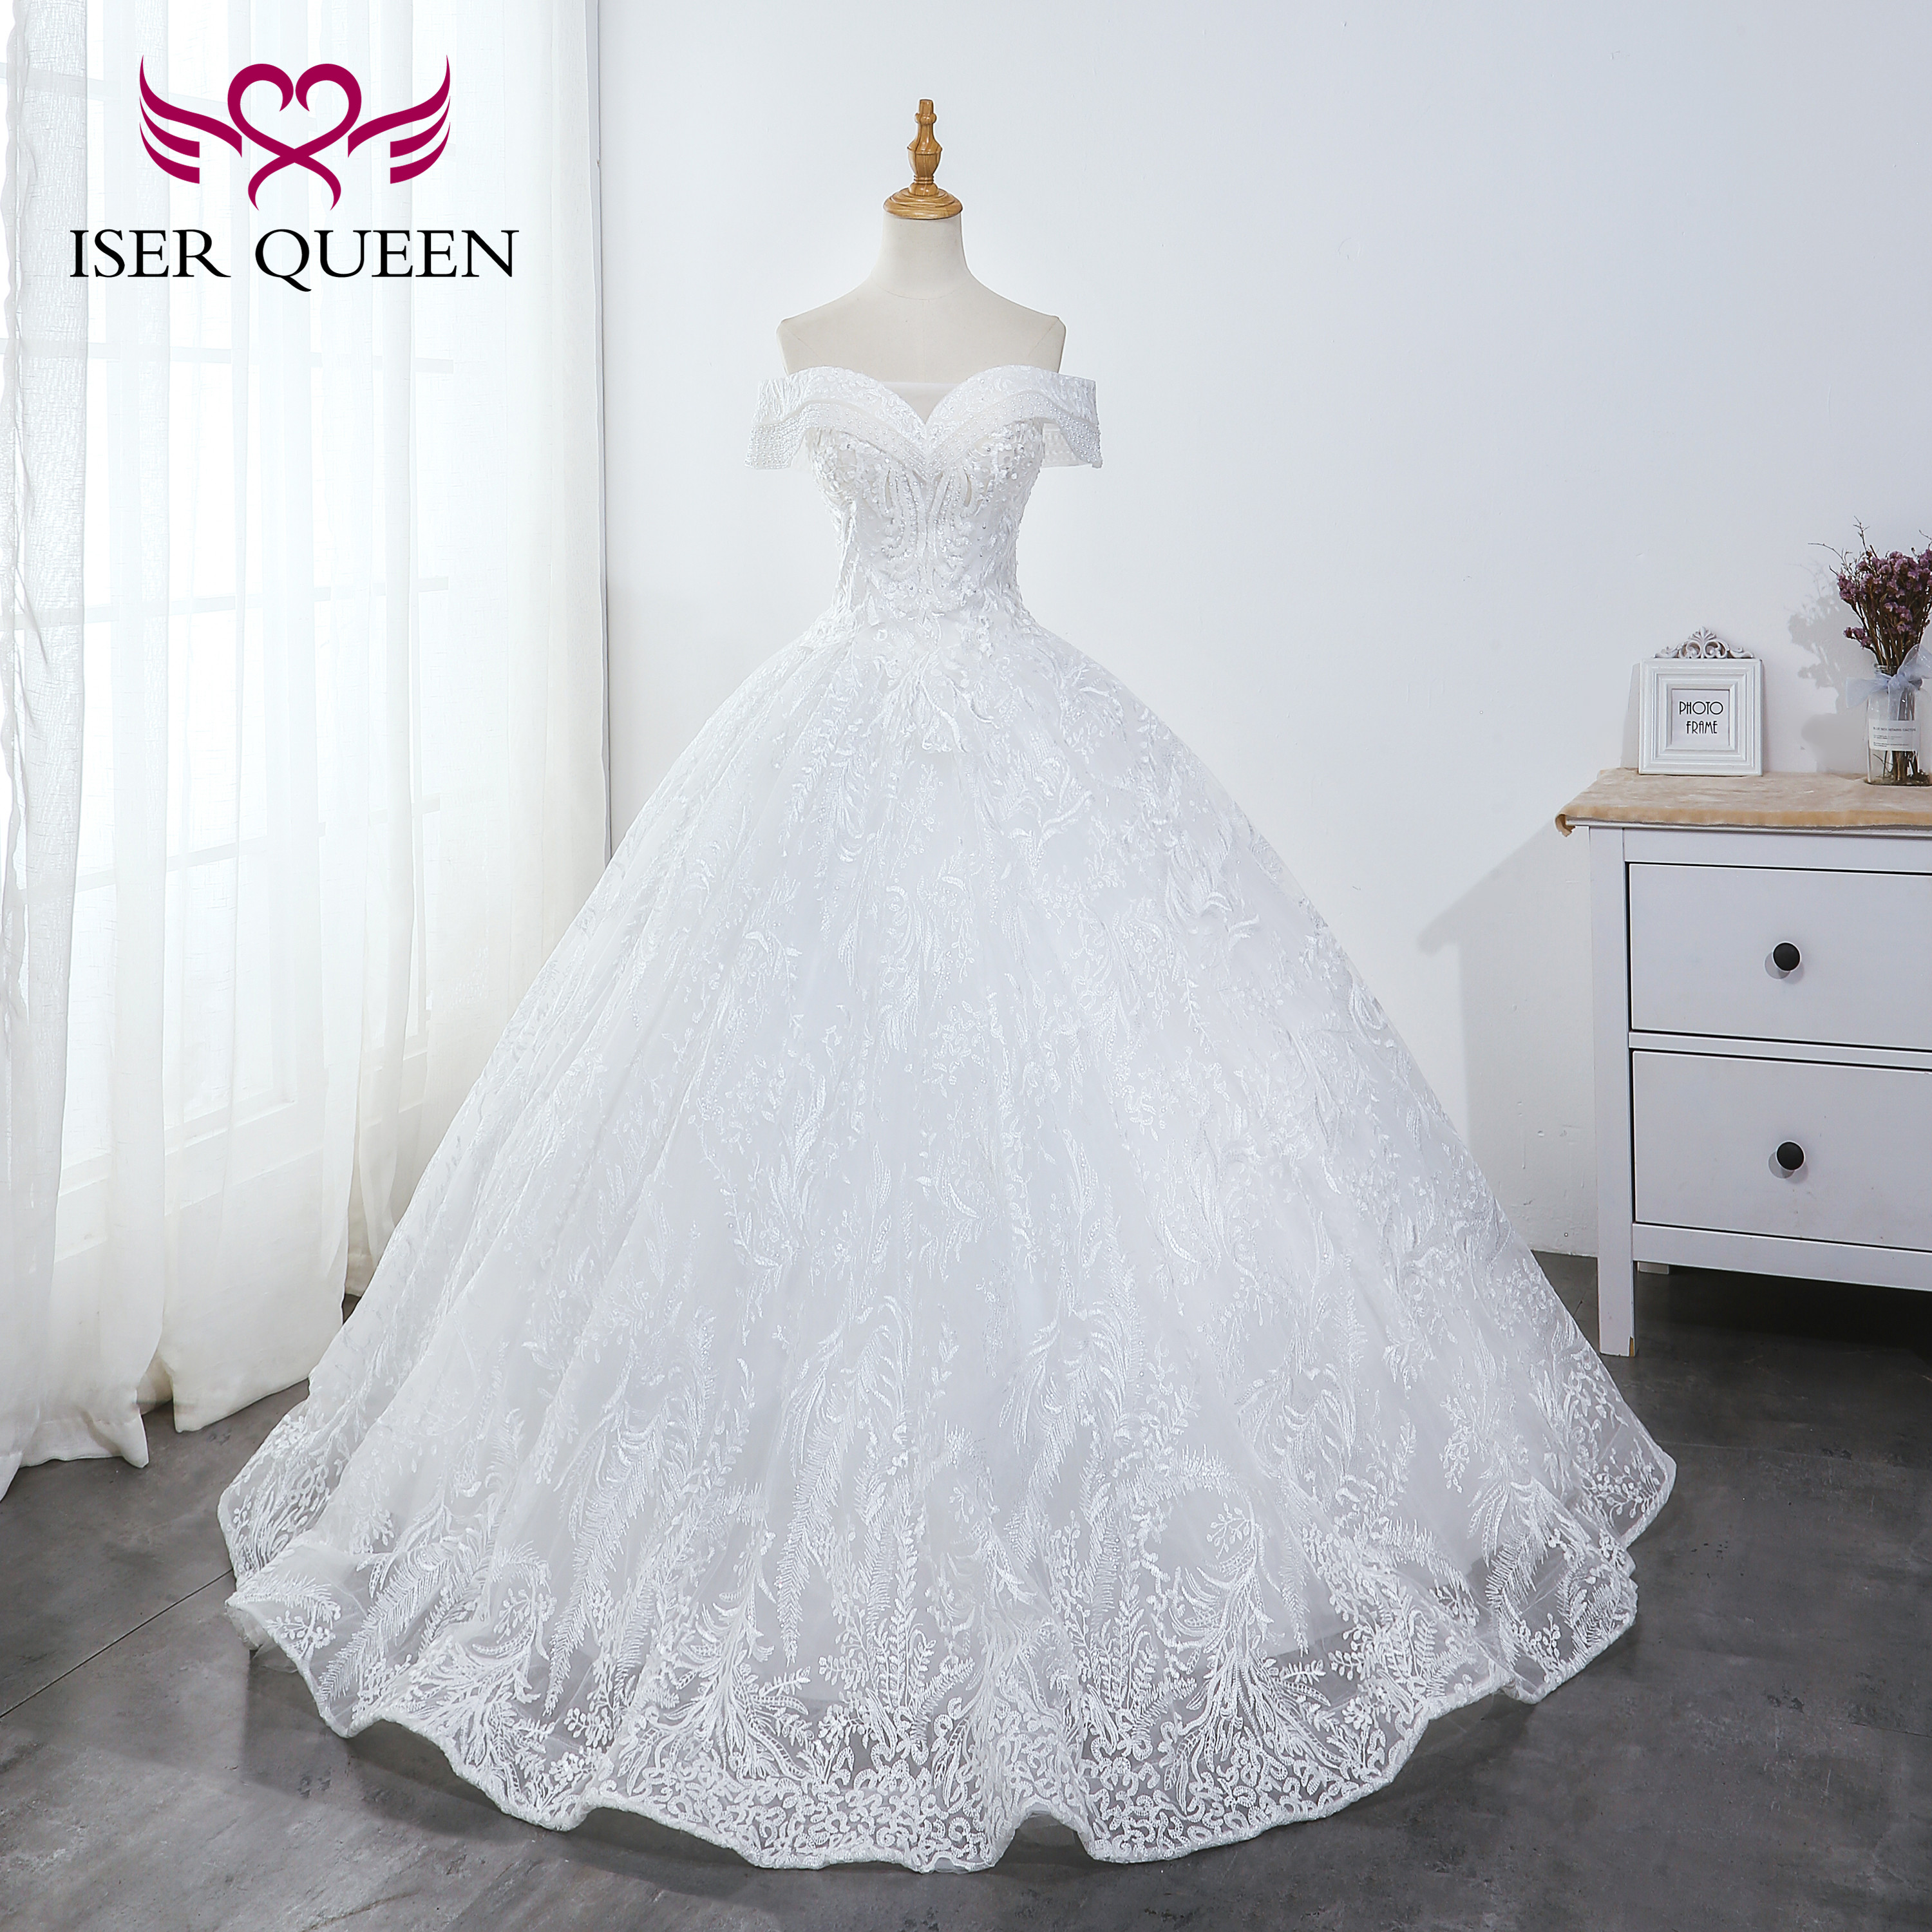 Cap Sleeves Beading Sequined Pearls Ball Gown Wedding Dresses Princess Stylish Lace Up Pure White Vestido De Novia 2019 WX0043